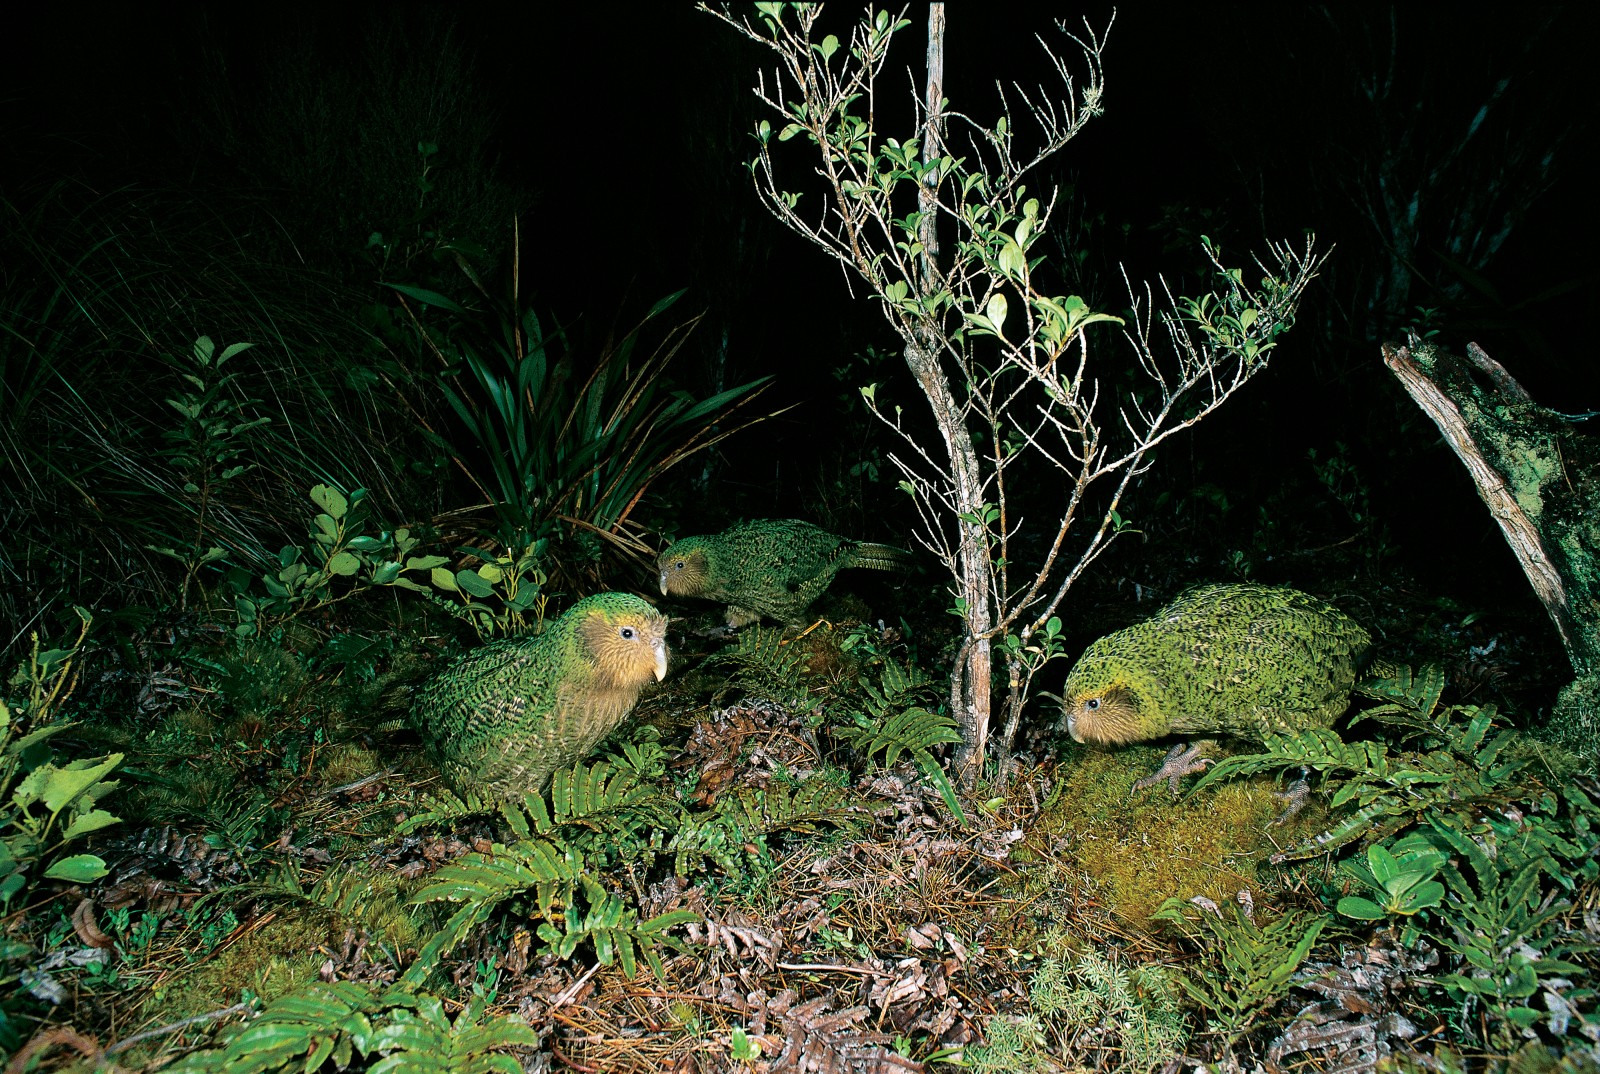 Lisa, a precious female, was lost for 13 years on Hauturu/Little Barrier Island. When found in 1999 she was sitting on three eggs, which were taken to DoC's rearing unit at Burwood Bush, near Te Anau, for final incubation and hand-rearing. Three females-Ellie, Aranga and Hauturu-resulted, seen here as fledglings on Whenua Hou/Codfish Island at five months of age. The unexpected addition of four females to the population gave the programme to save the kakapo a tremendous boost at a time when females were in short supply.